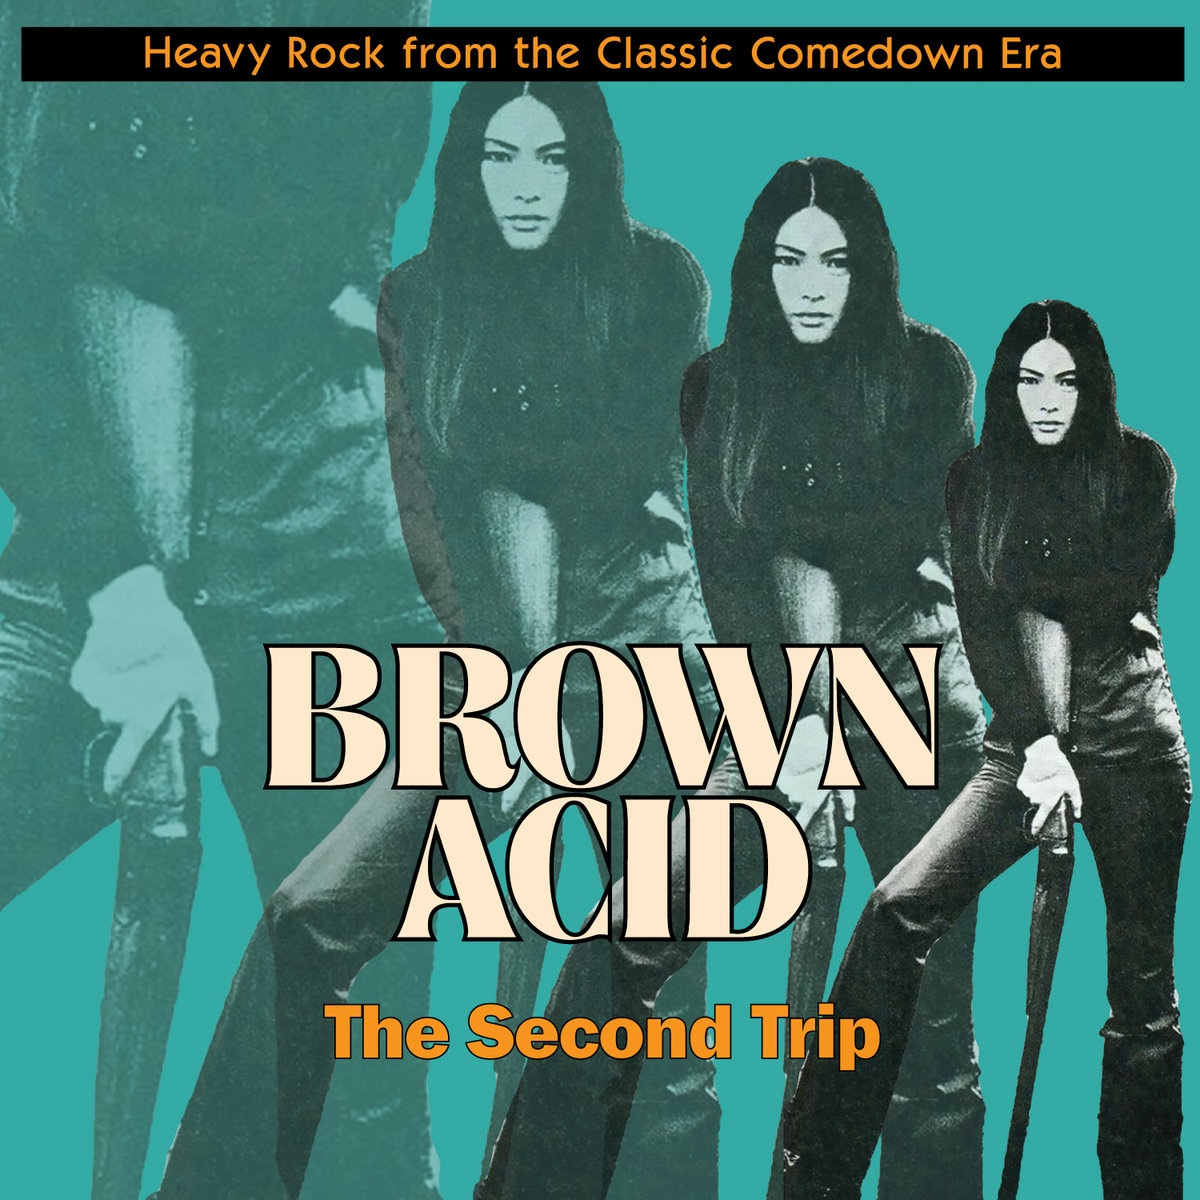 VARIOUS - BROWN ACID: THE SECOND TRIP